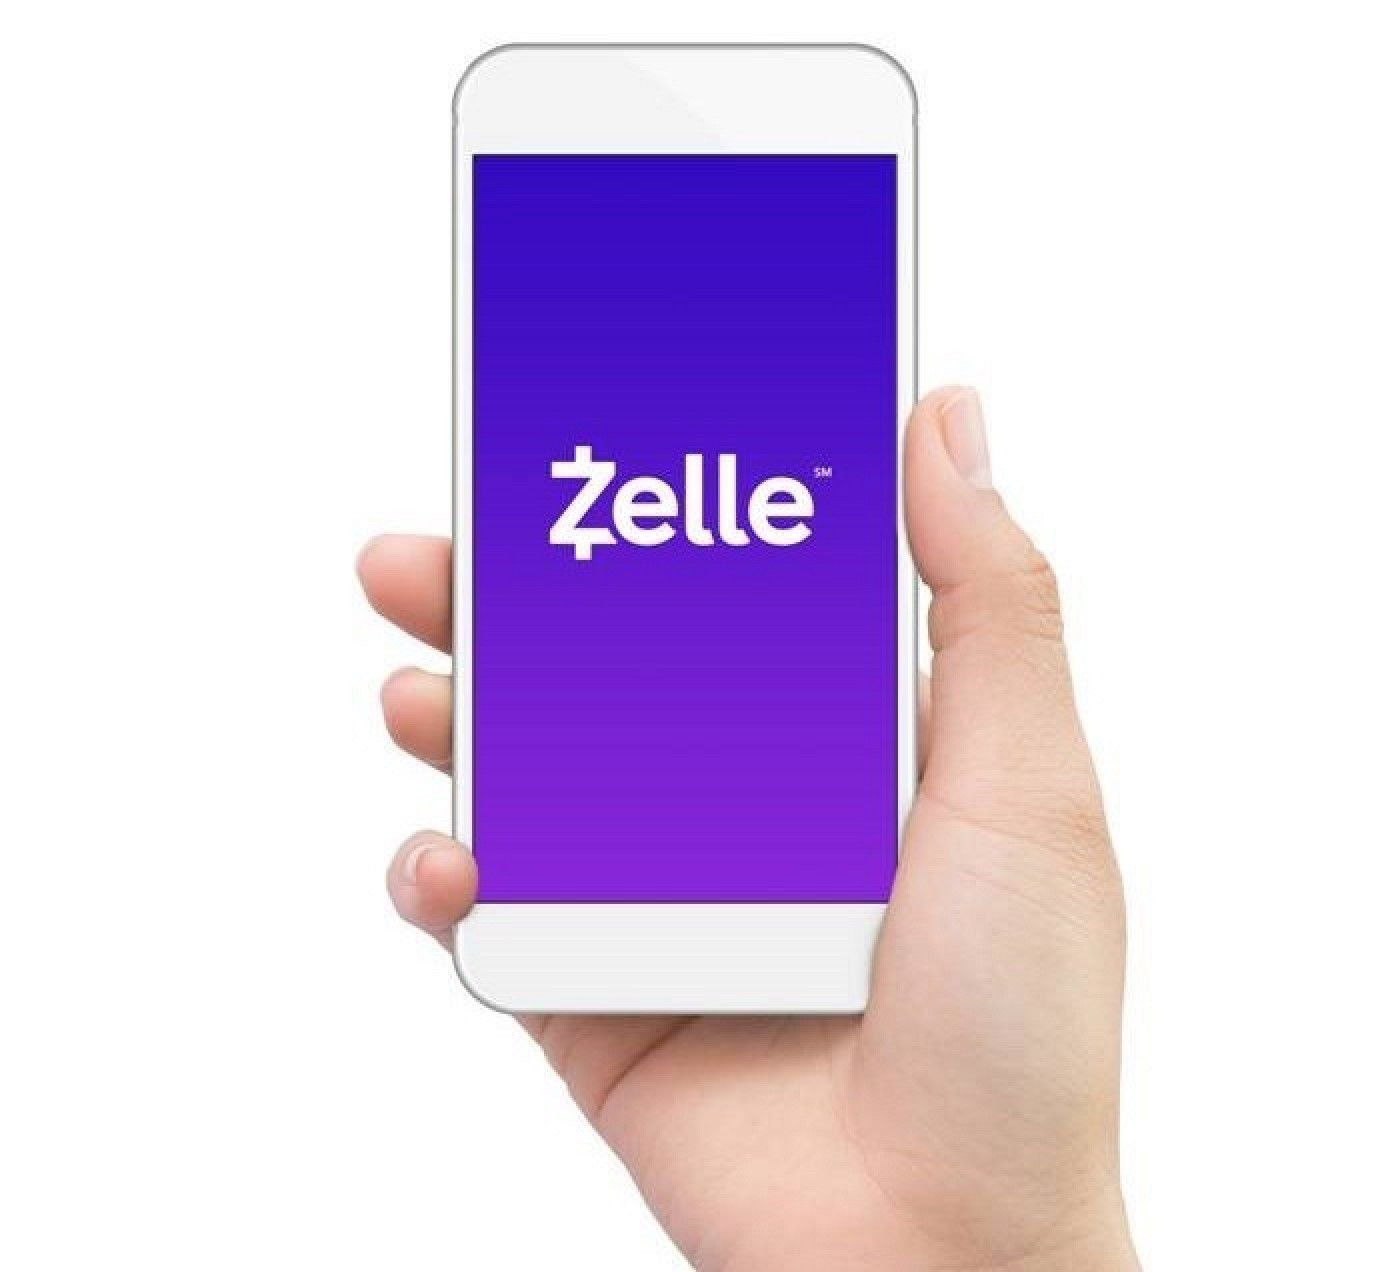 Peer-to-Peer Payments Service 'Zelle' Debuts With Support From Major US Banks for Speedier Transfers  #RelatedRoundup:ApplePayTag:Zelle #news